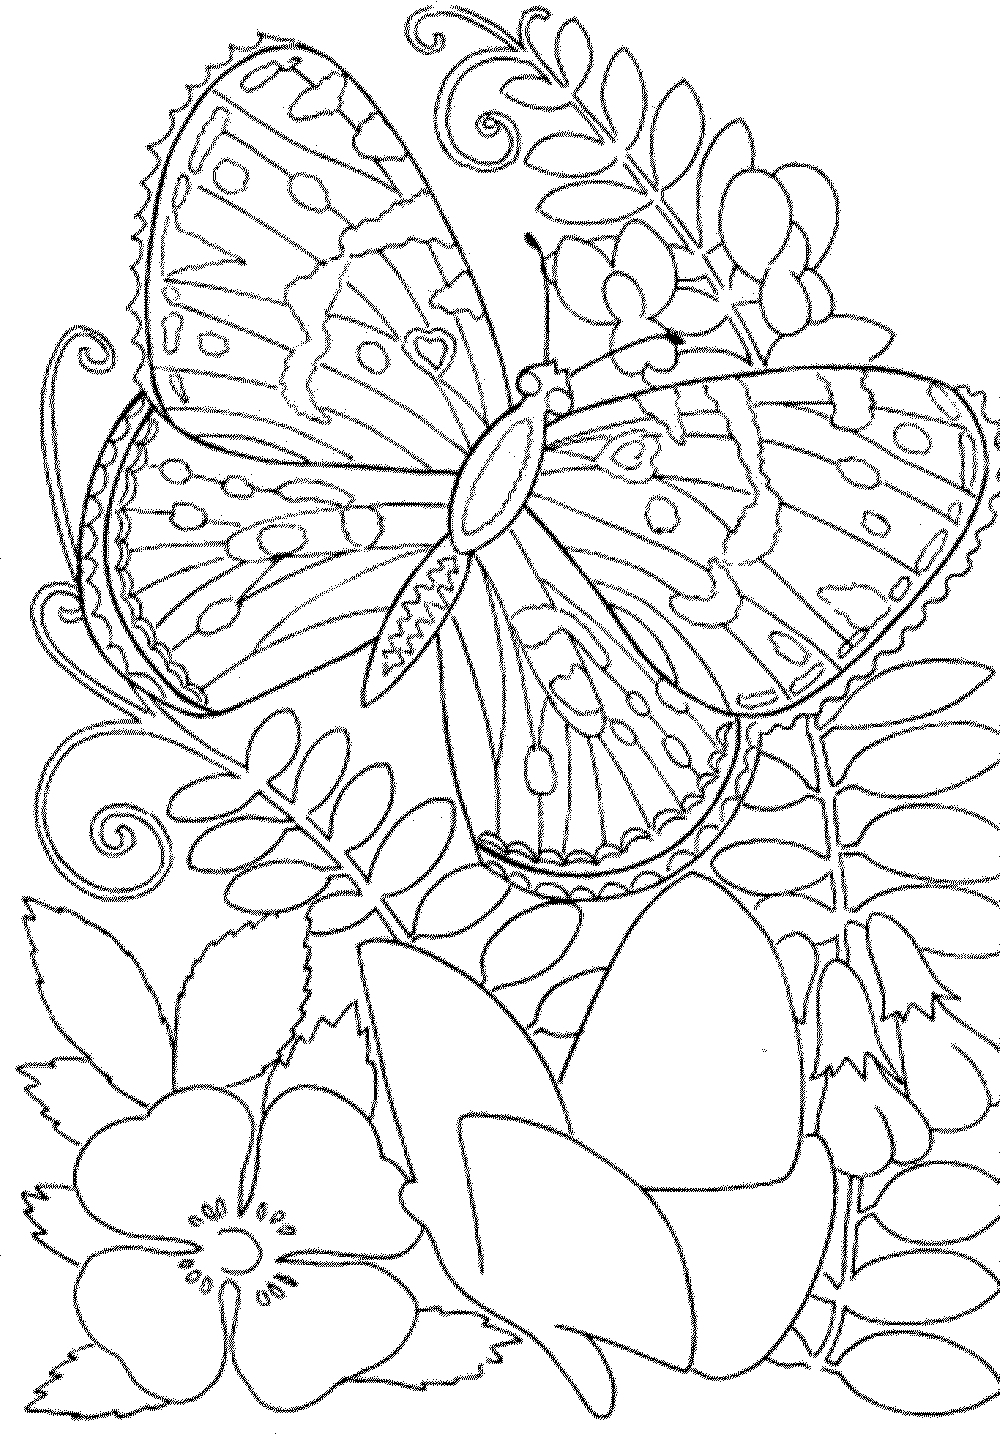 Free Owl Adult Coloring Pages To Print - Coloring Home | free printable coloring pages for adults